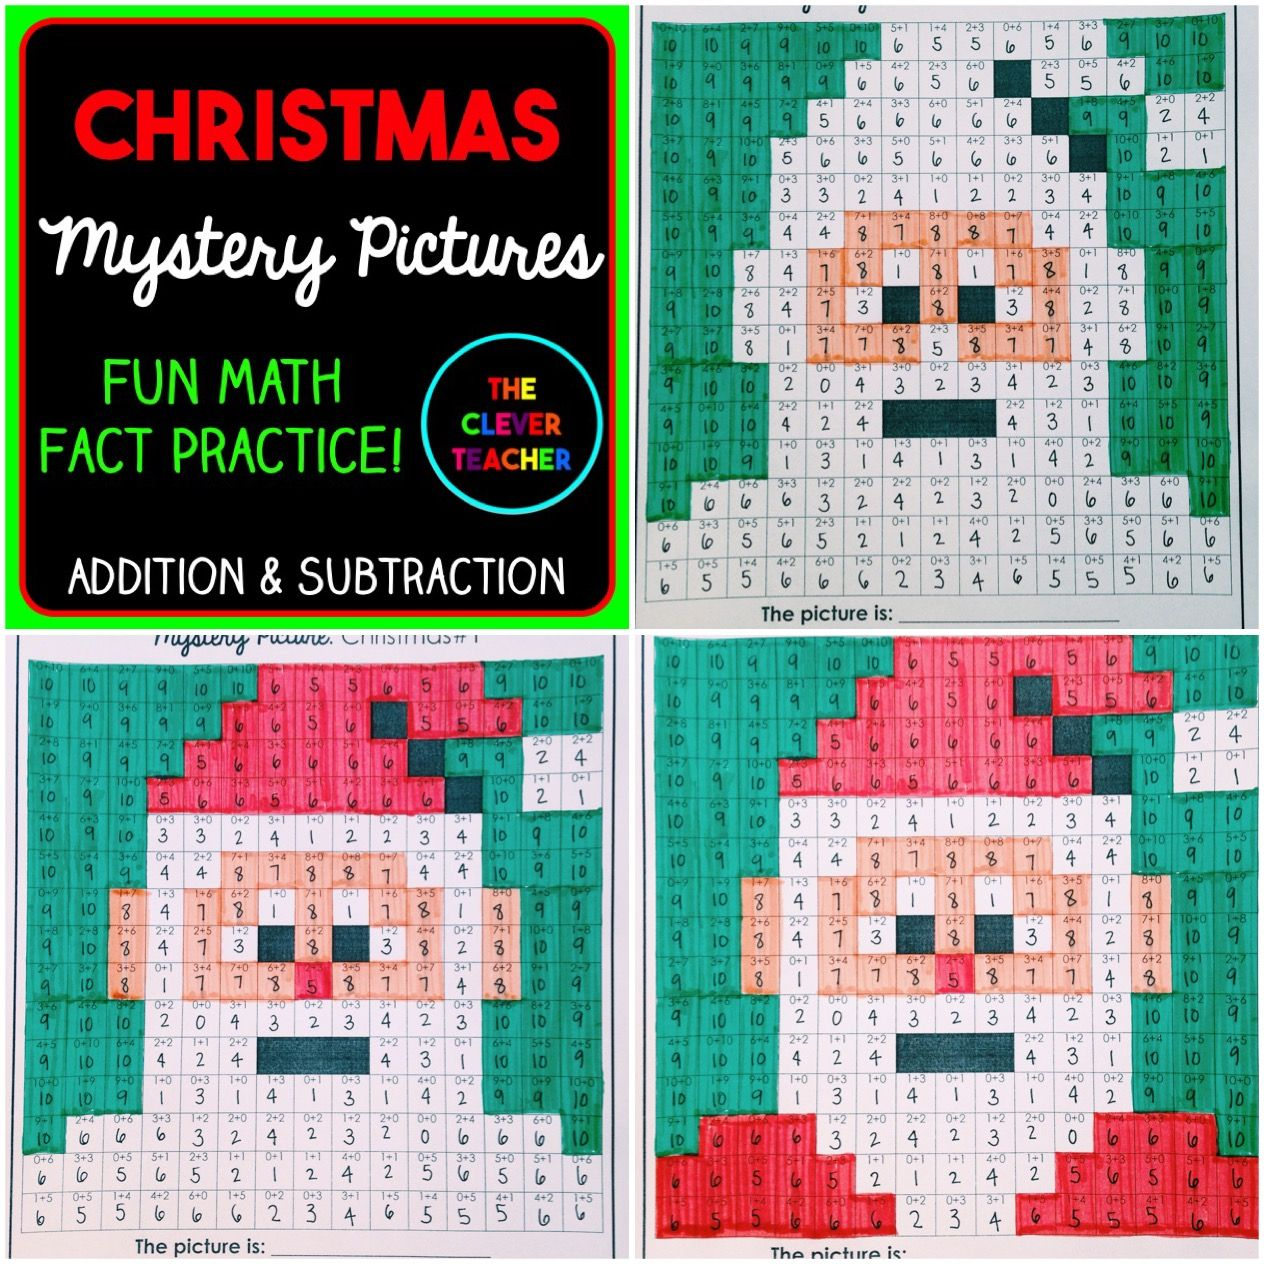 Mystery Pictures Christmas